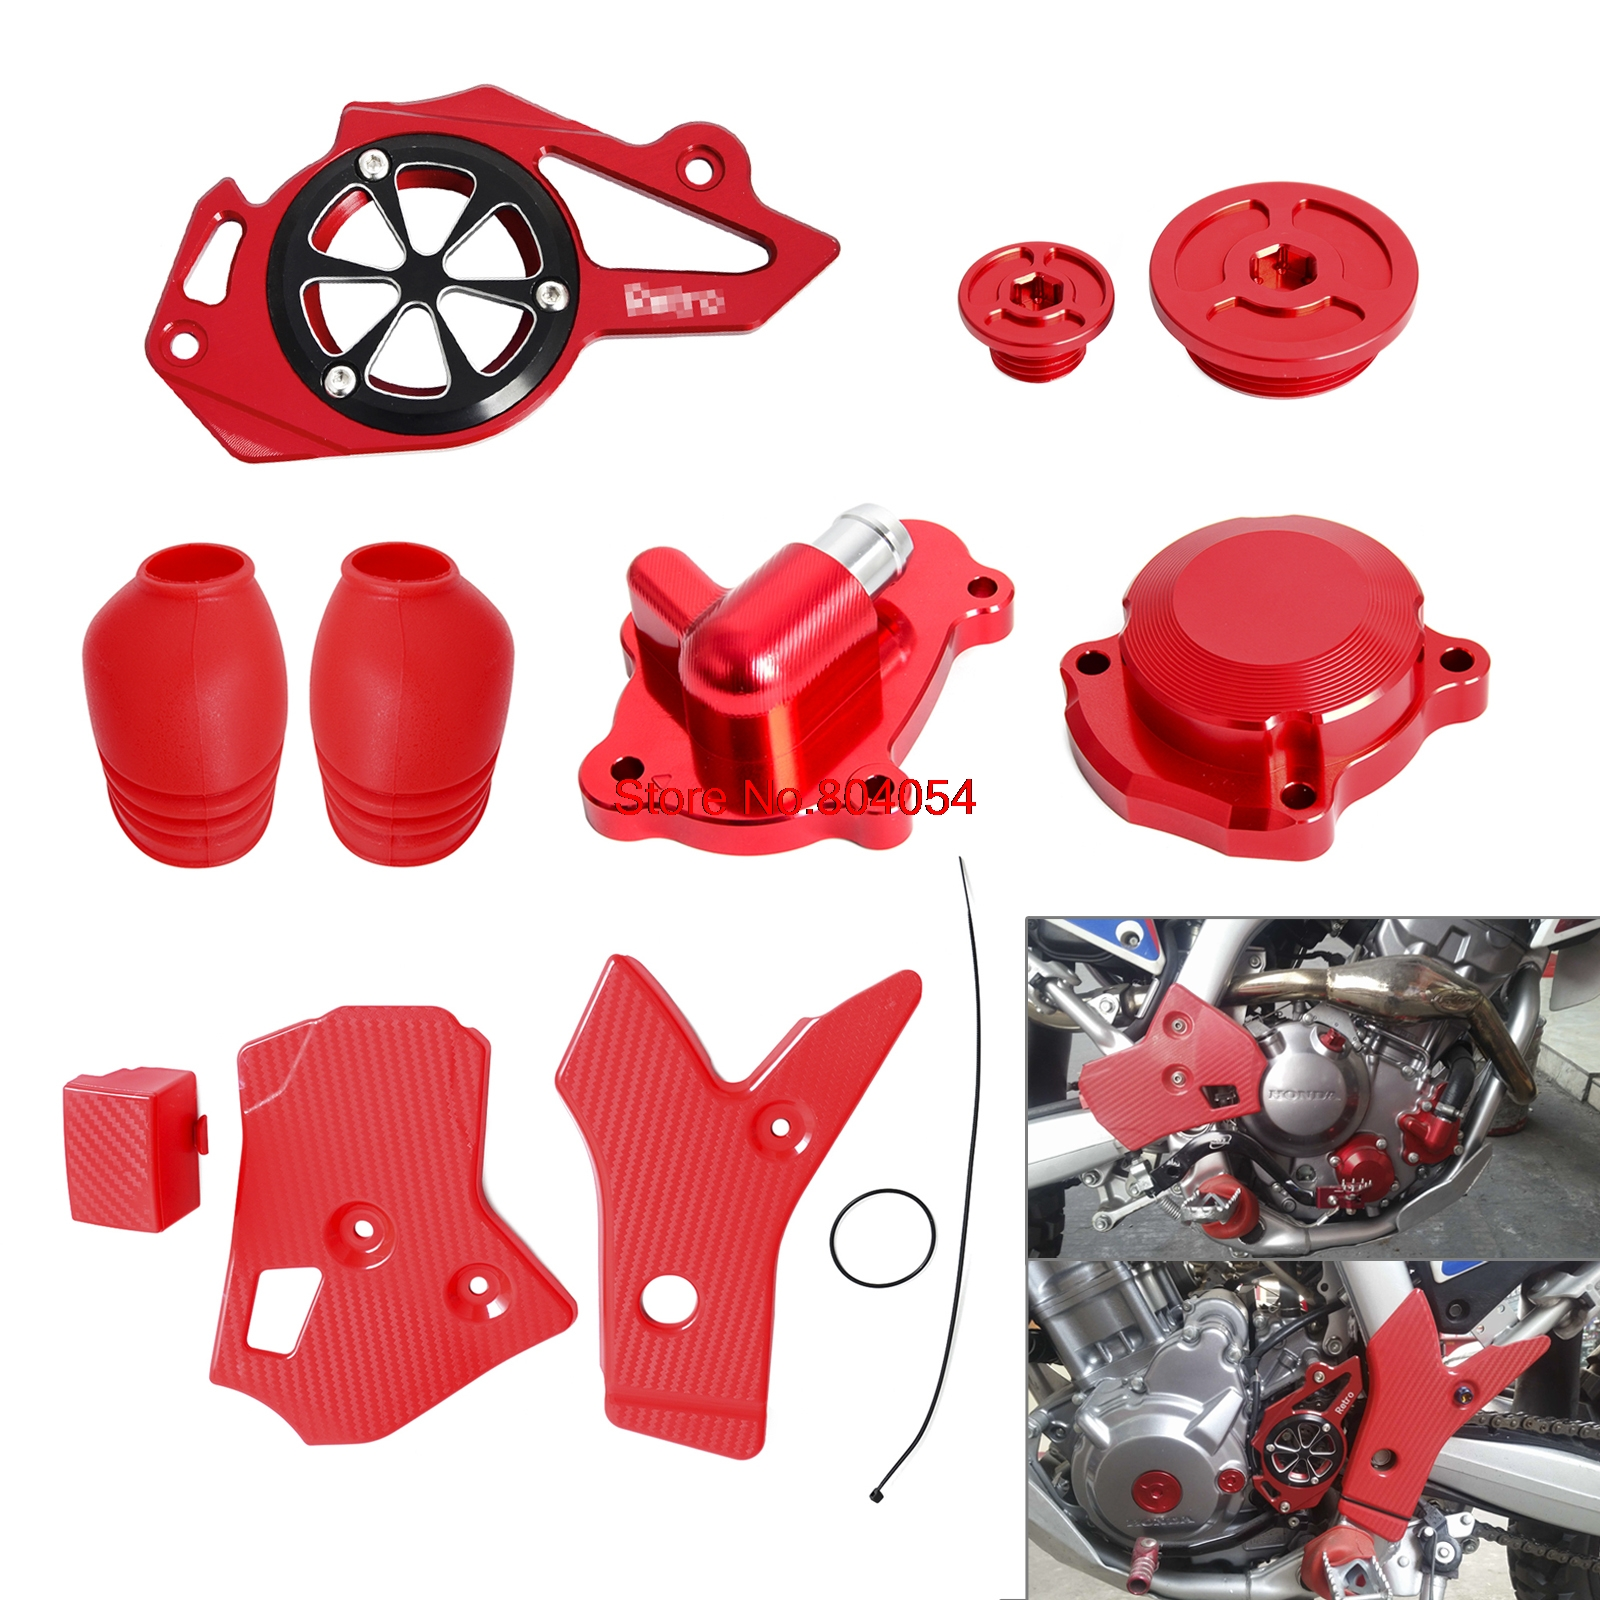 Modification Parts Water Pump Cover & Protect Cover & Oil Filter Cover & Others Bling Kit For Honda CRF250L CRF250M 2012-2015 1pcs for washing machine filter drainage pump cover filter waste water cap filter plug